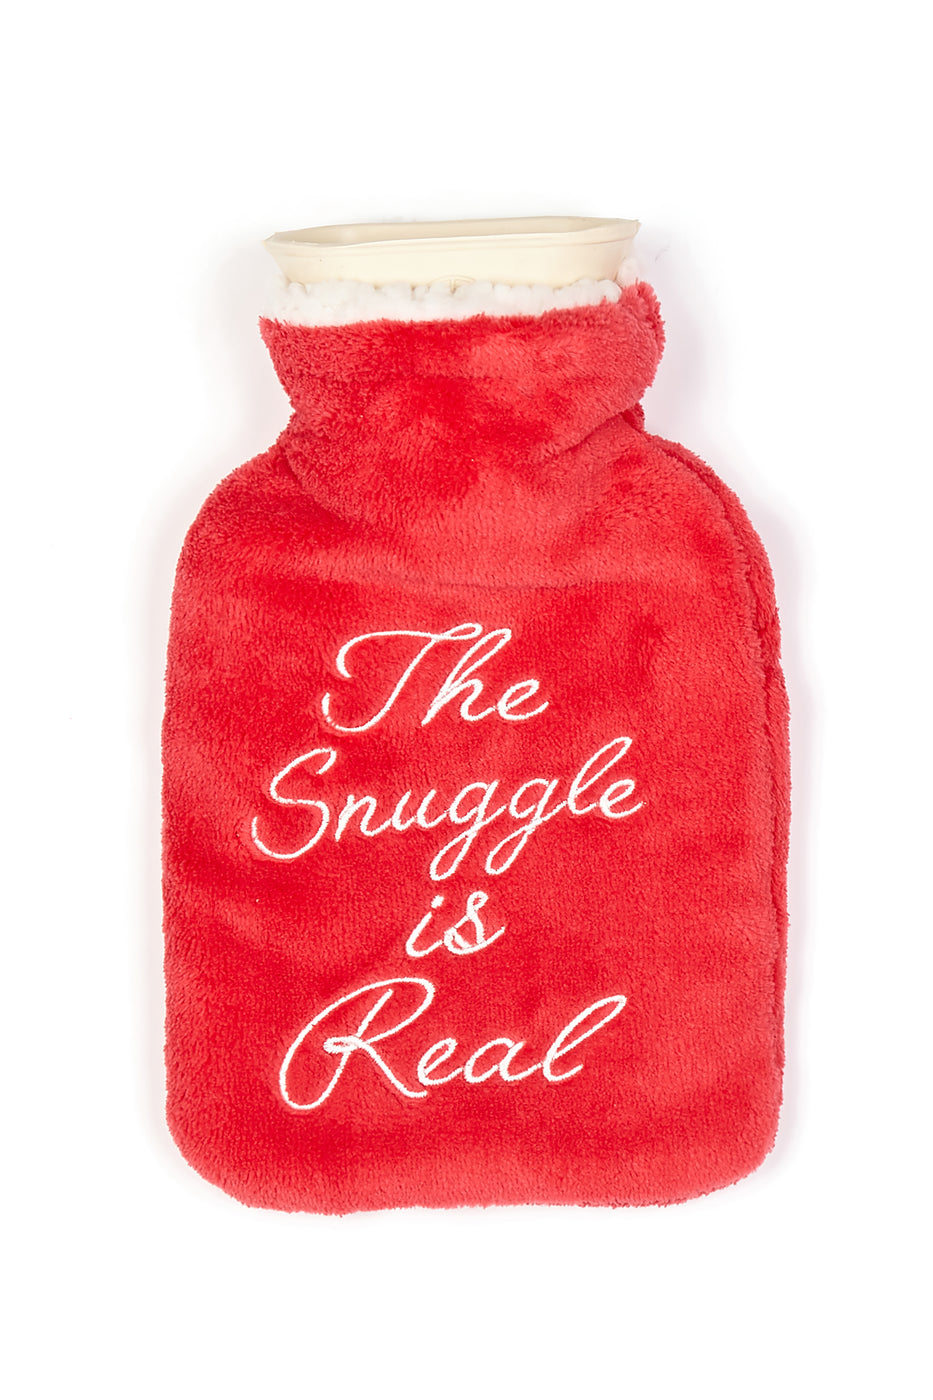 Chelsea Peers NYC The Snuggle Is Real Eyemask & Hot Water Bottle - Chelsea Peers NYC